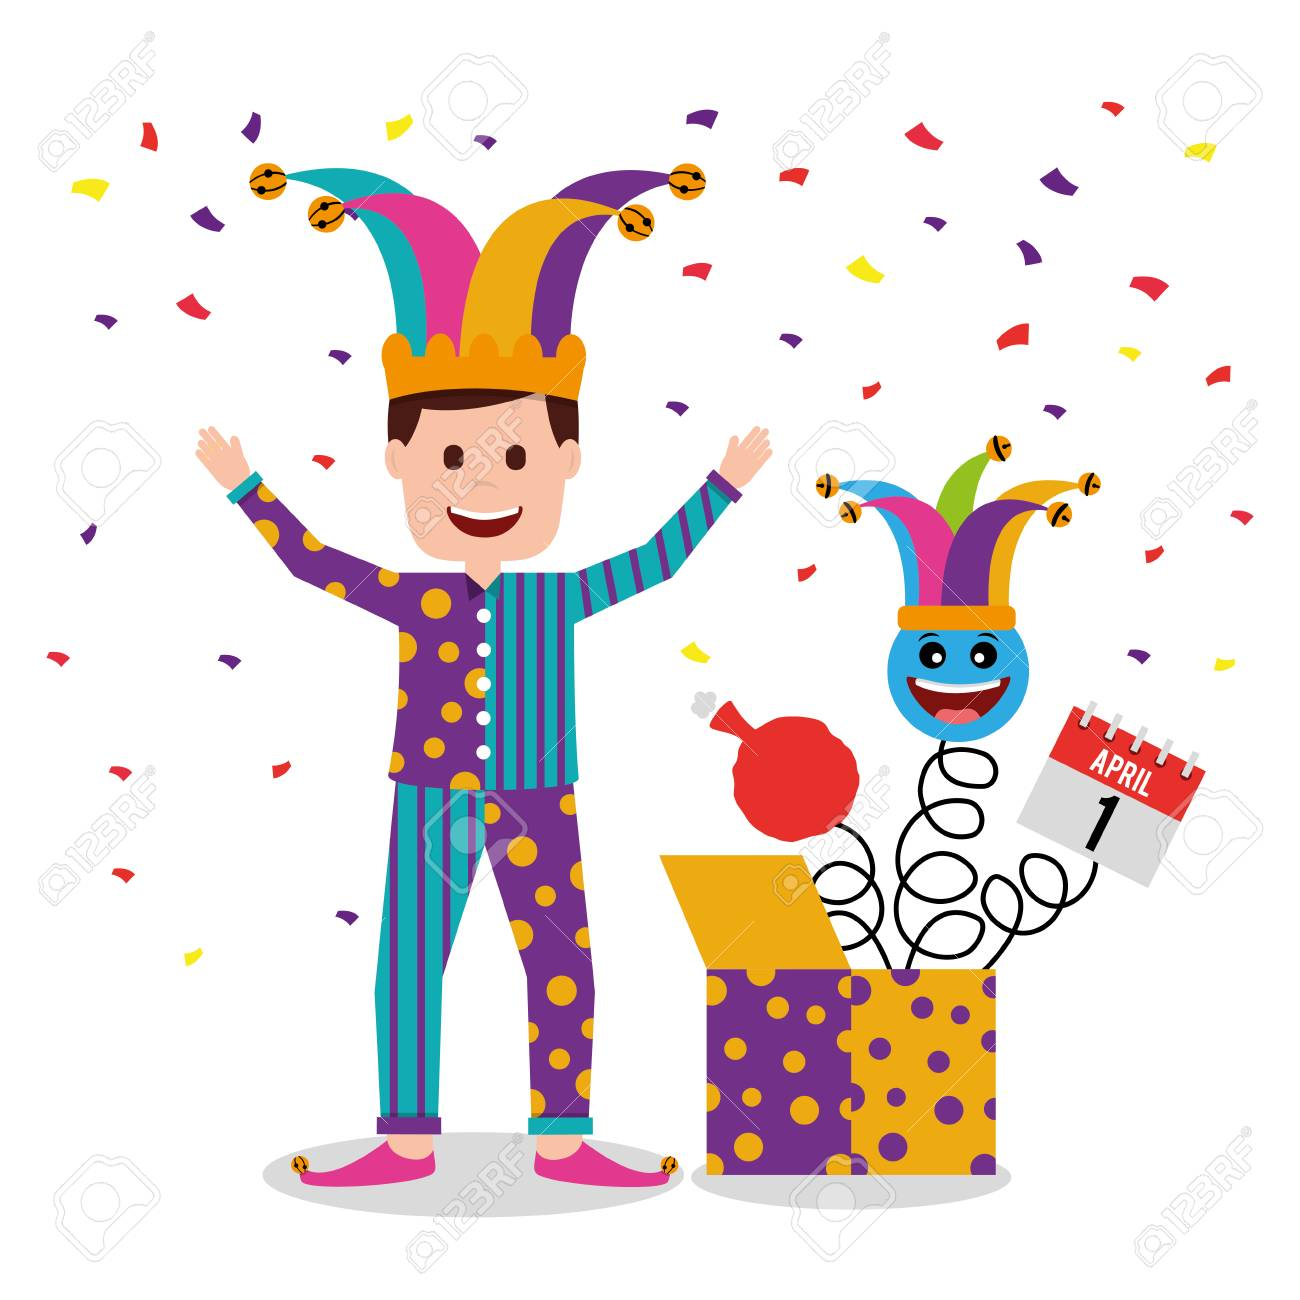 Man wearing clothes and jester hat jack in the box confetti. - 96285655